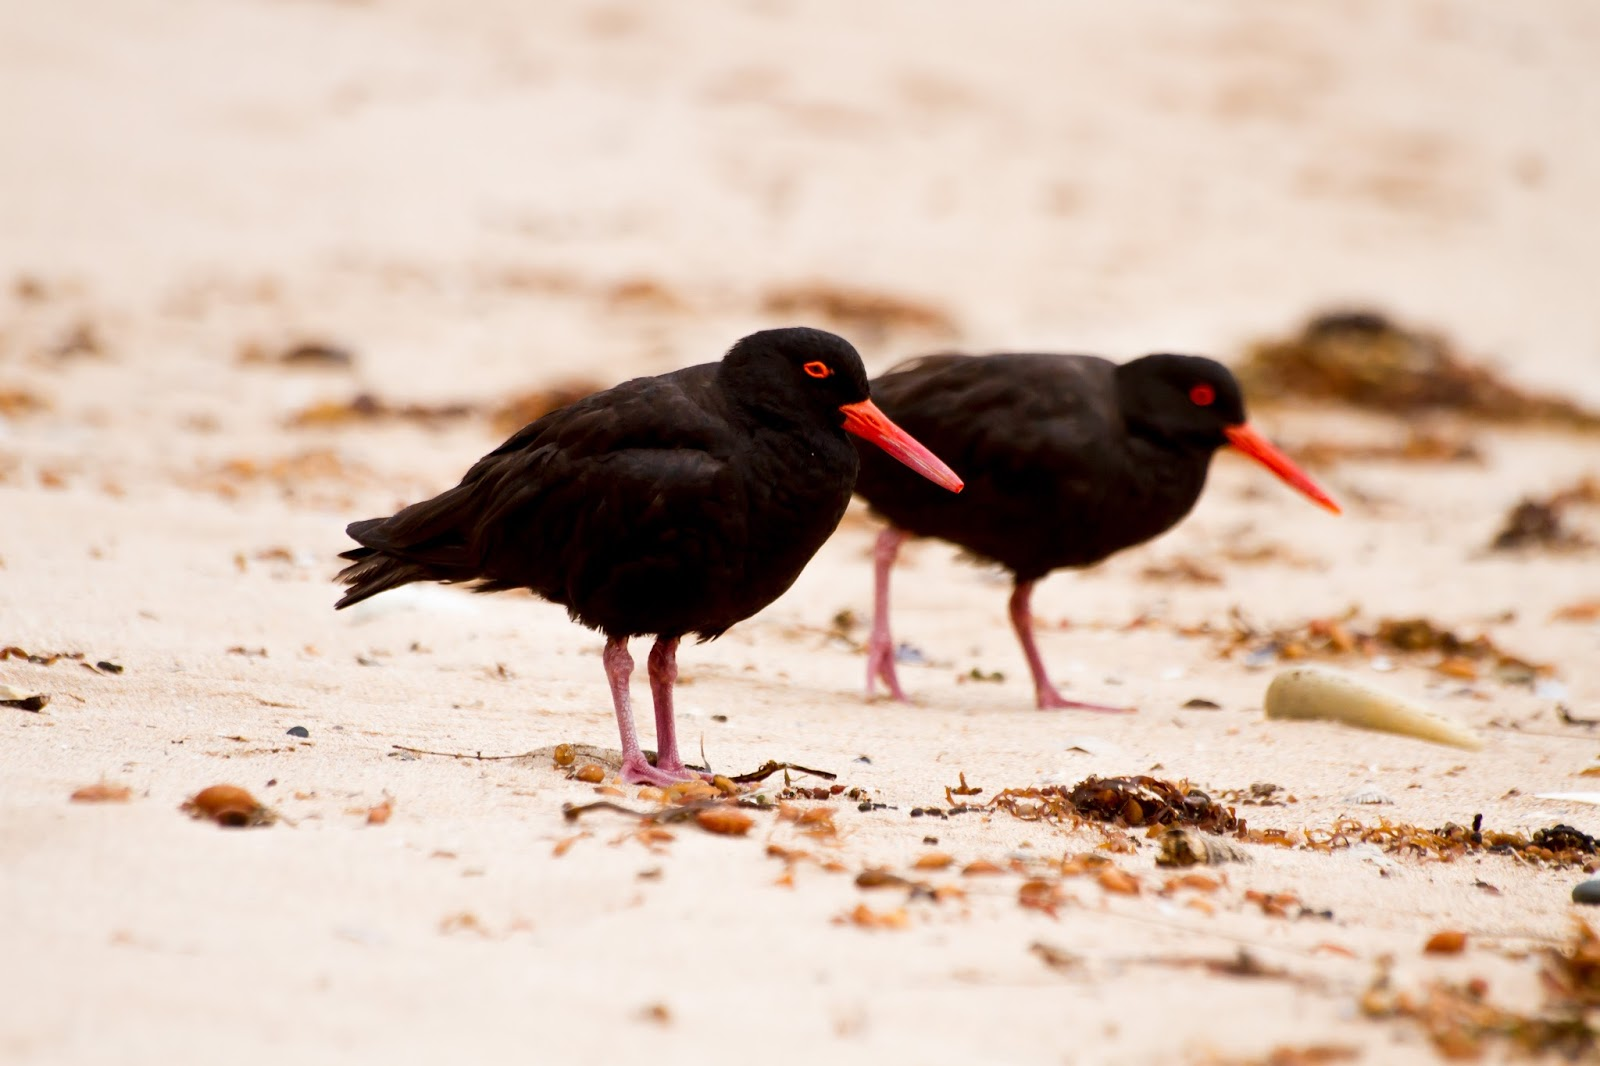 Sooty Oystercatchers at Pebbly Beach, NSW, Australia